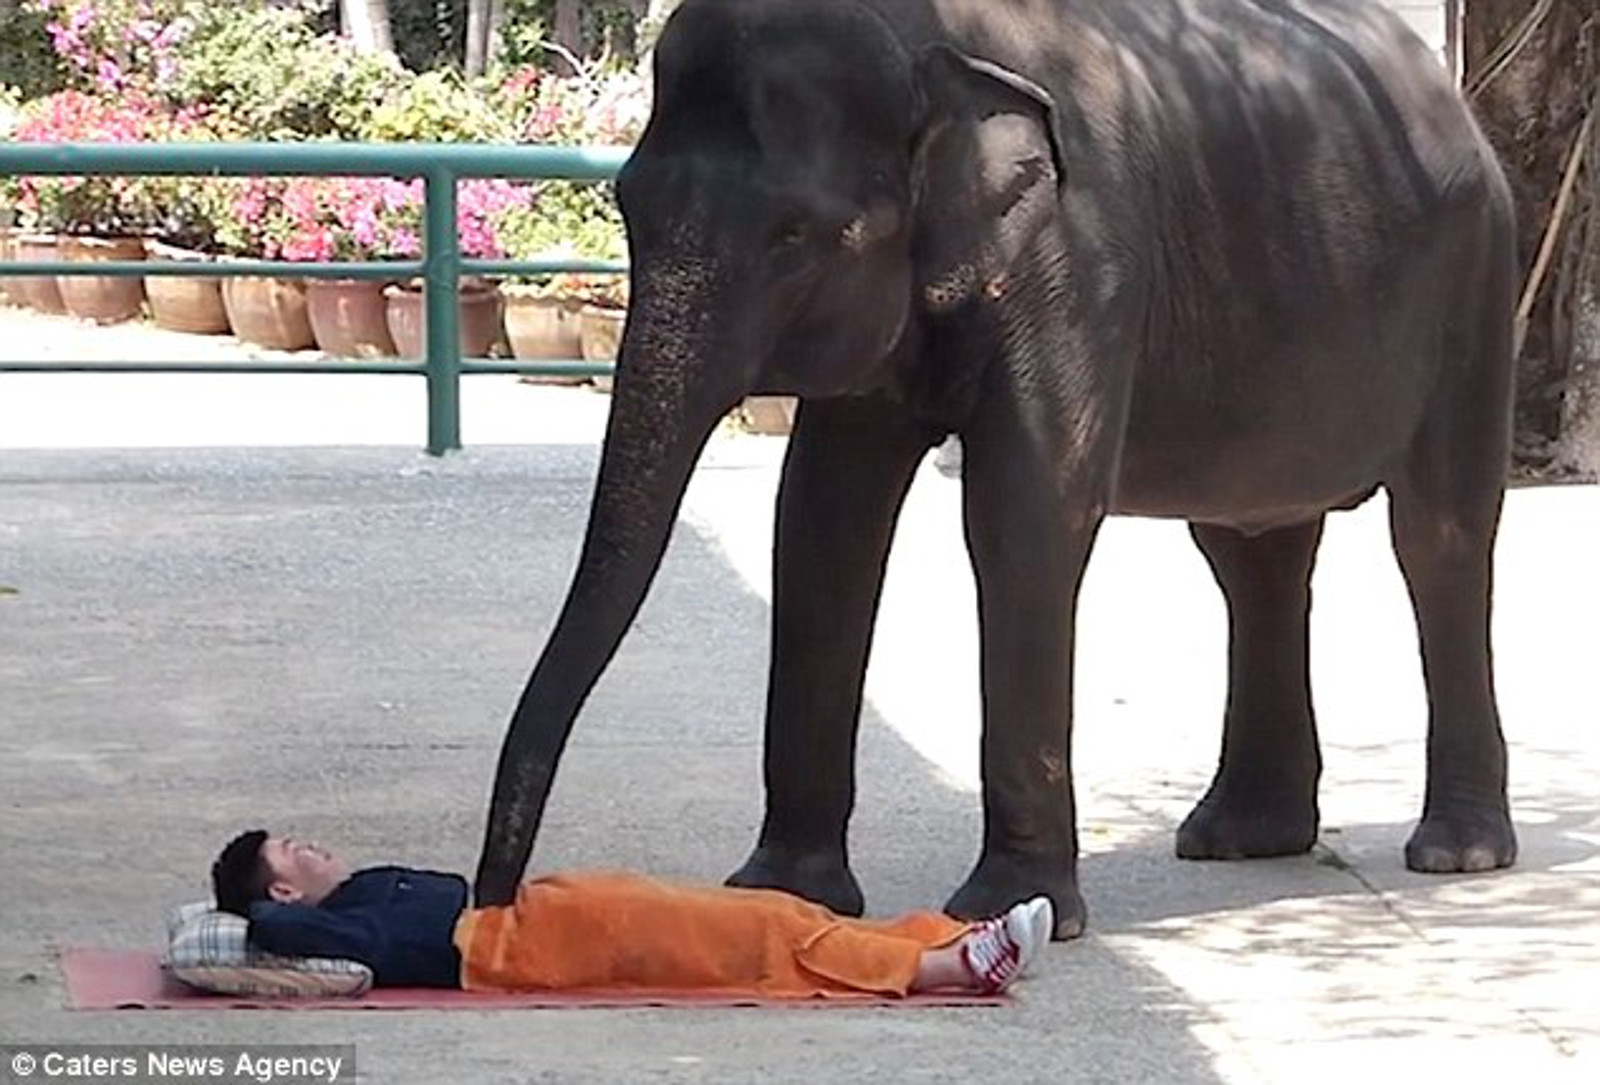 Would You Get a Massage From an Elephant? The Surprising Reason It Might Not be a Great Idea